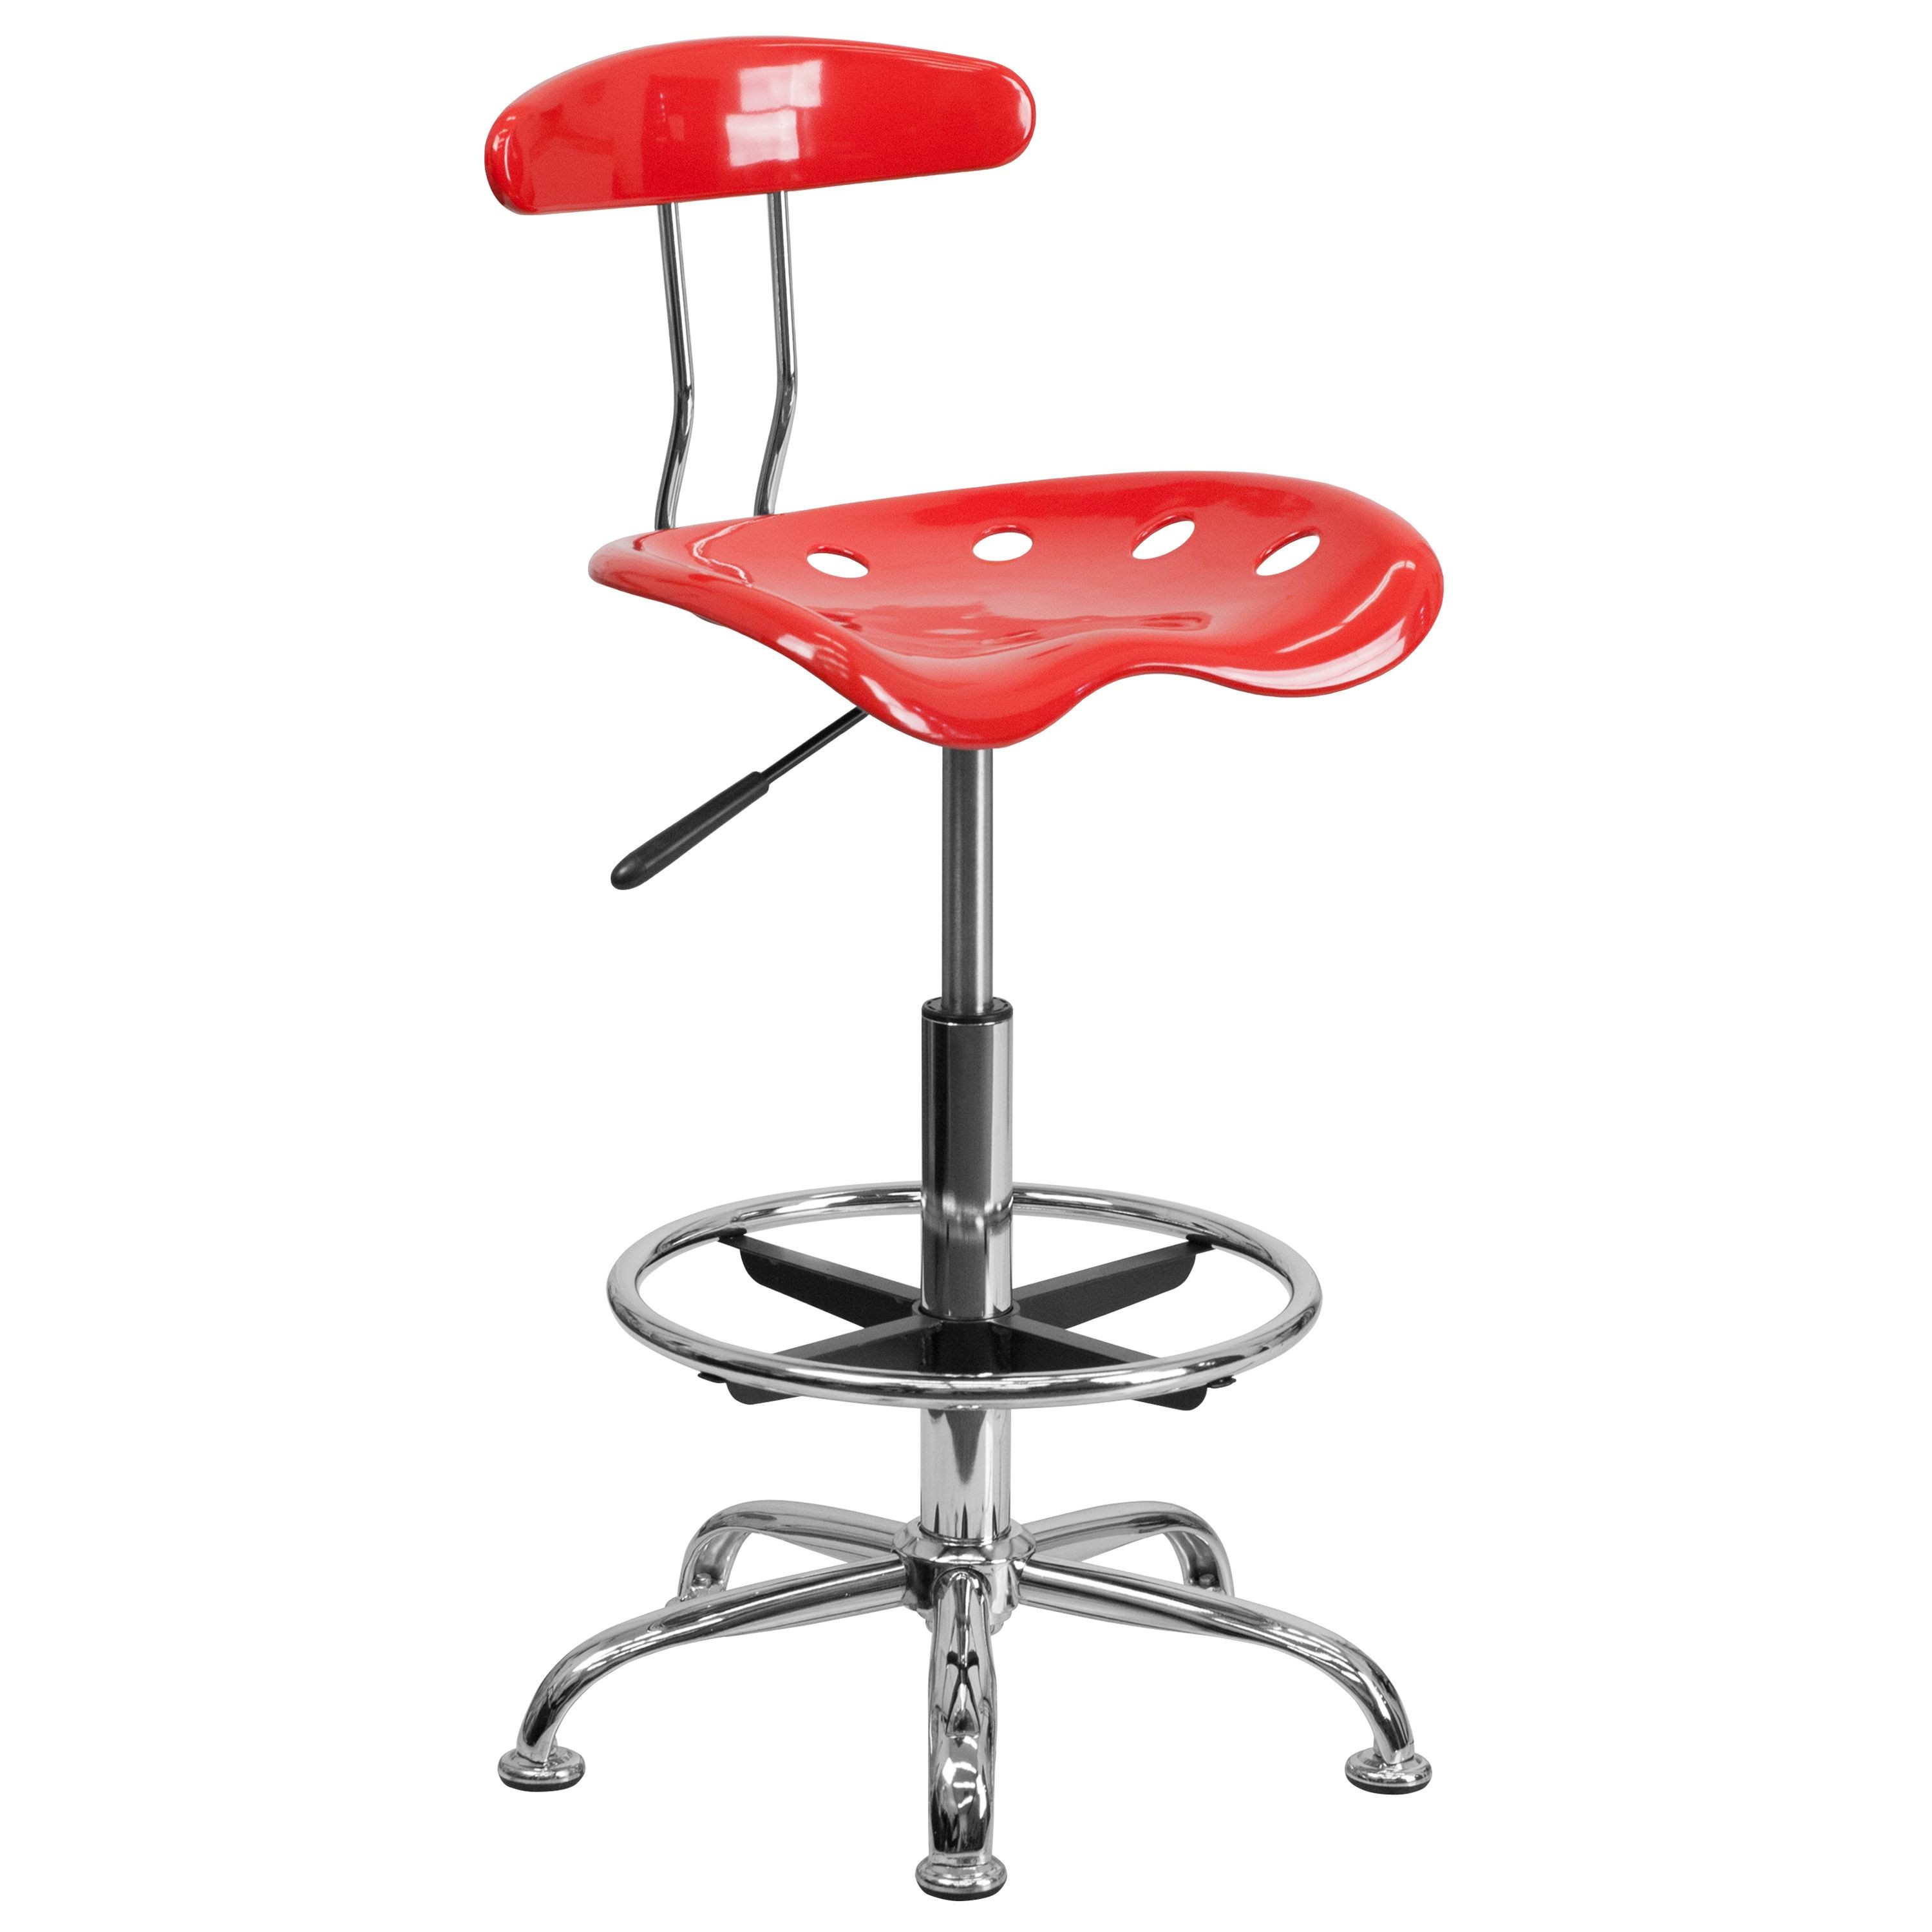 Flash Furniture LF-215-CHERRYTOMATO-GG Vibrant Cherry Tomato and Chrome Bar Height Drafting Stool with Tractor Seat